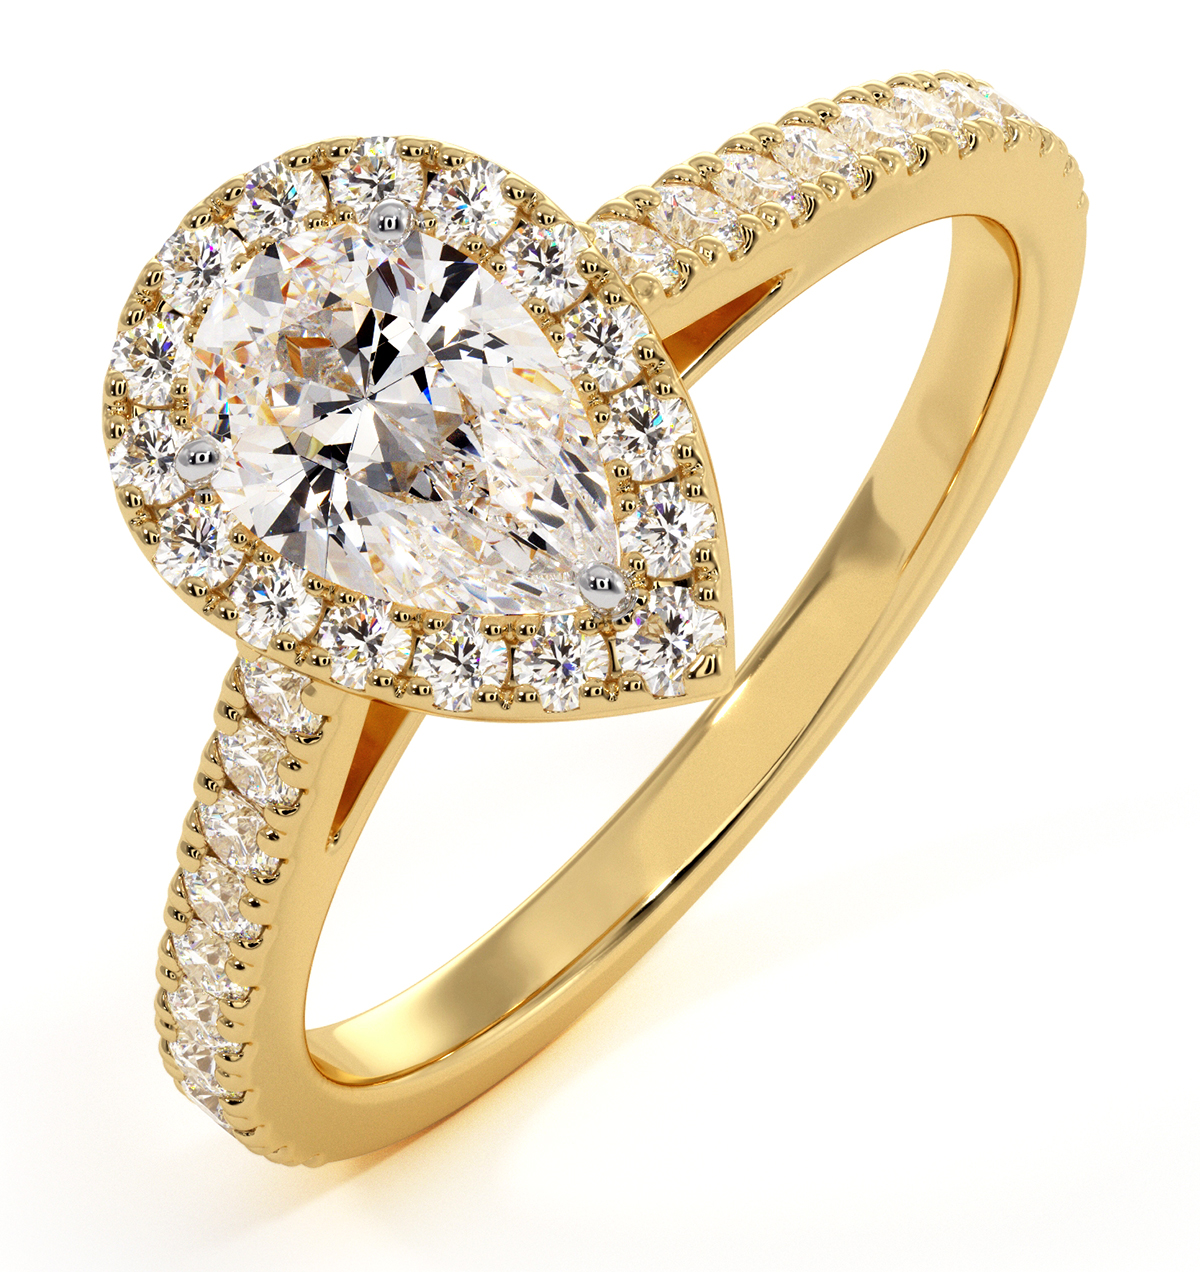 Diana GIA Diamond Pear Halo Engagement Ring in 18K Gold 1ct G/VS2 - image 1